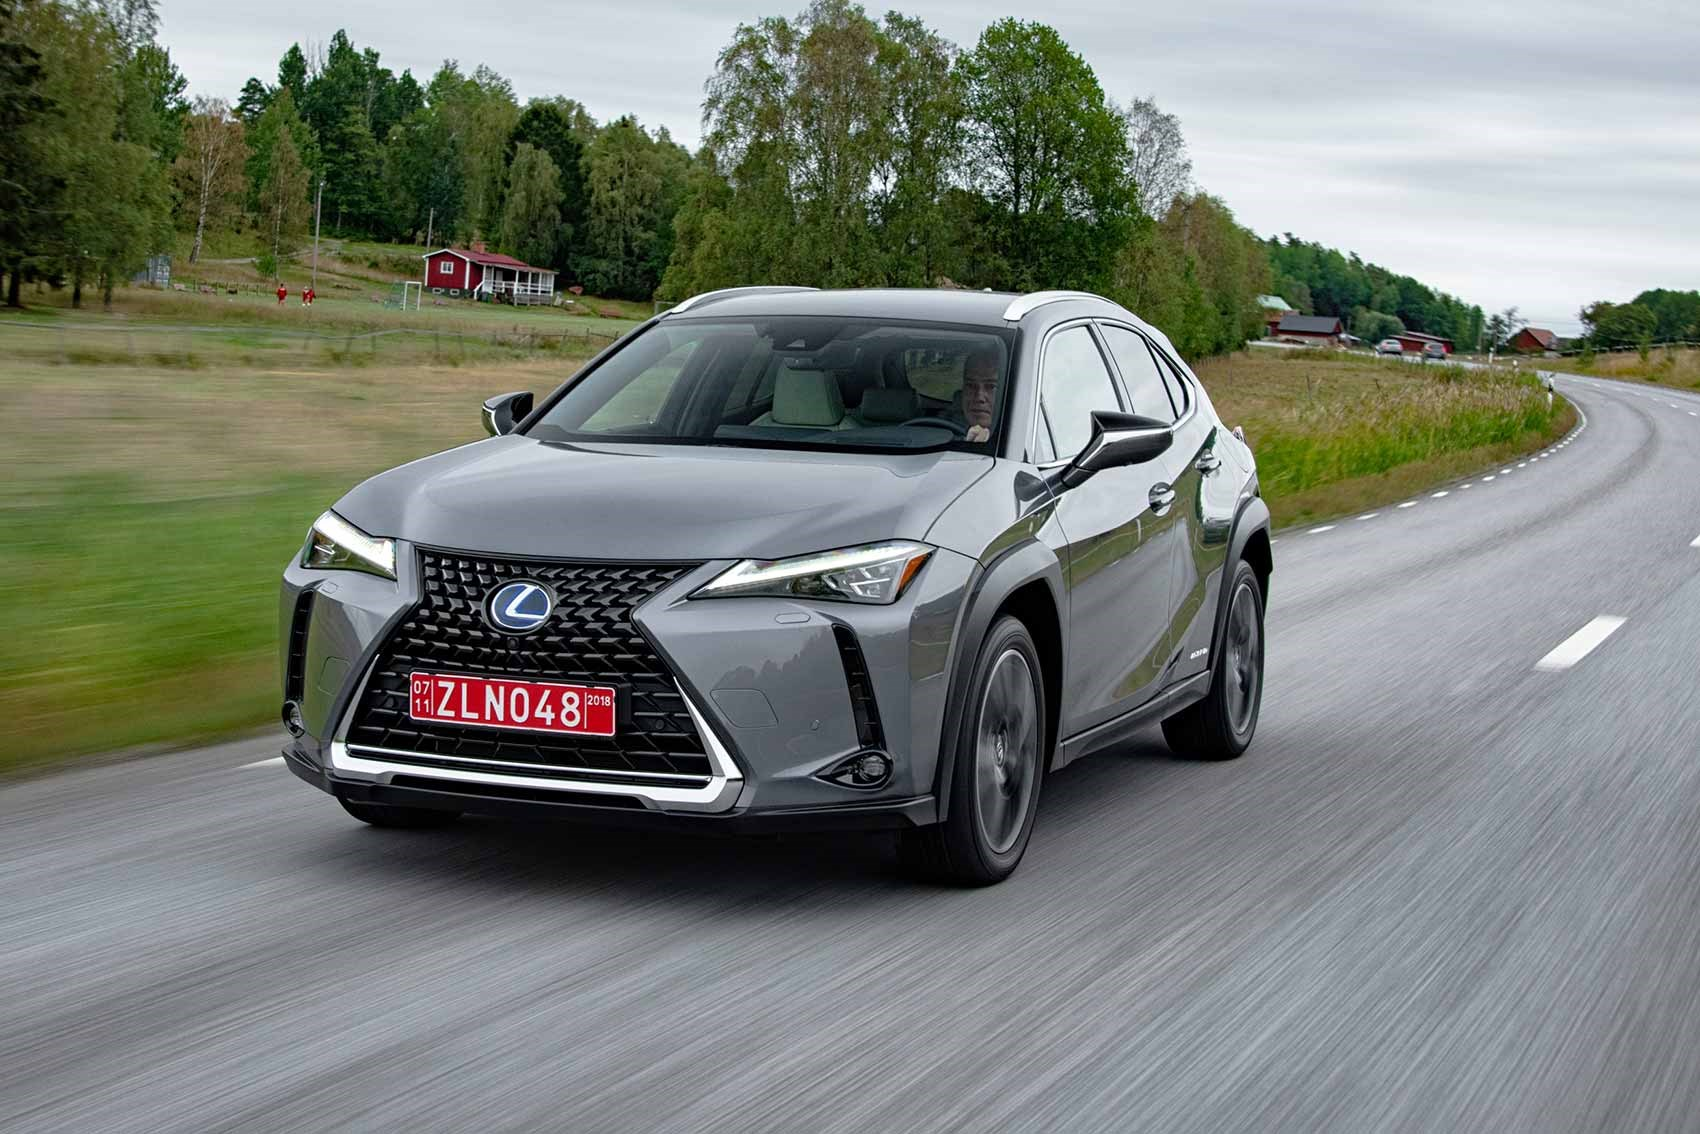 lexus ux 250h luxury 2019 review car magazine. Black Bedroom Furniture Sets. Home Design Ideas